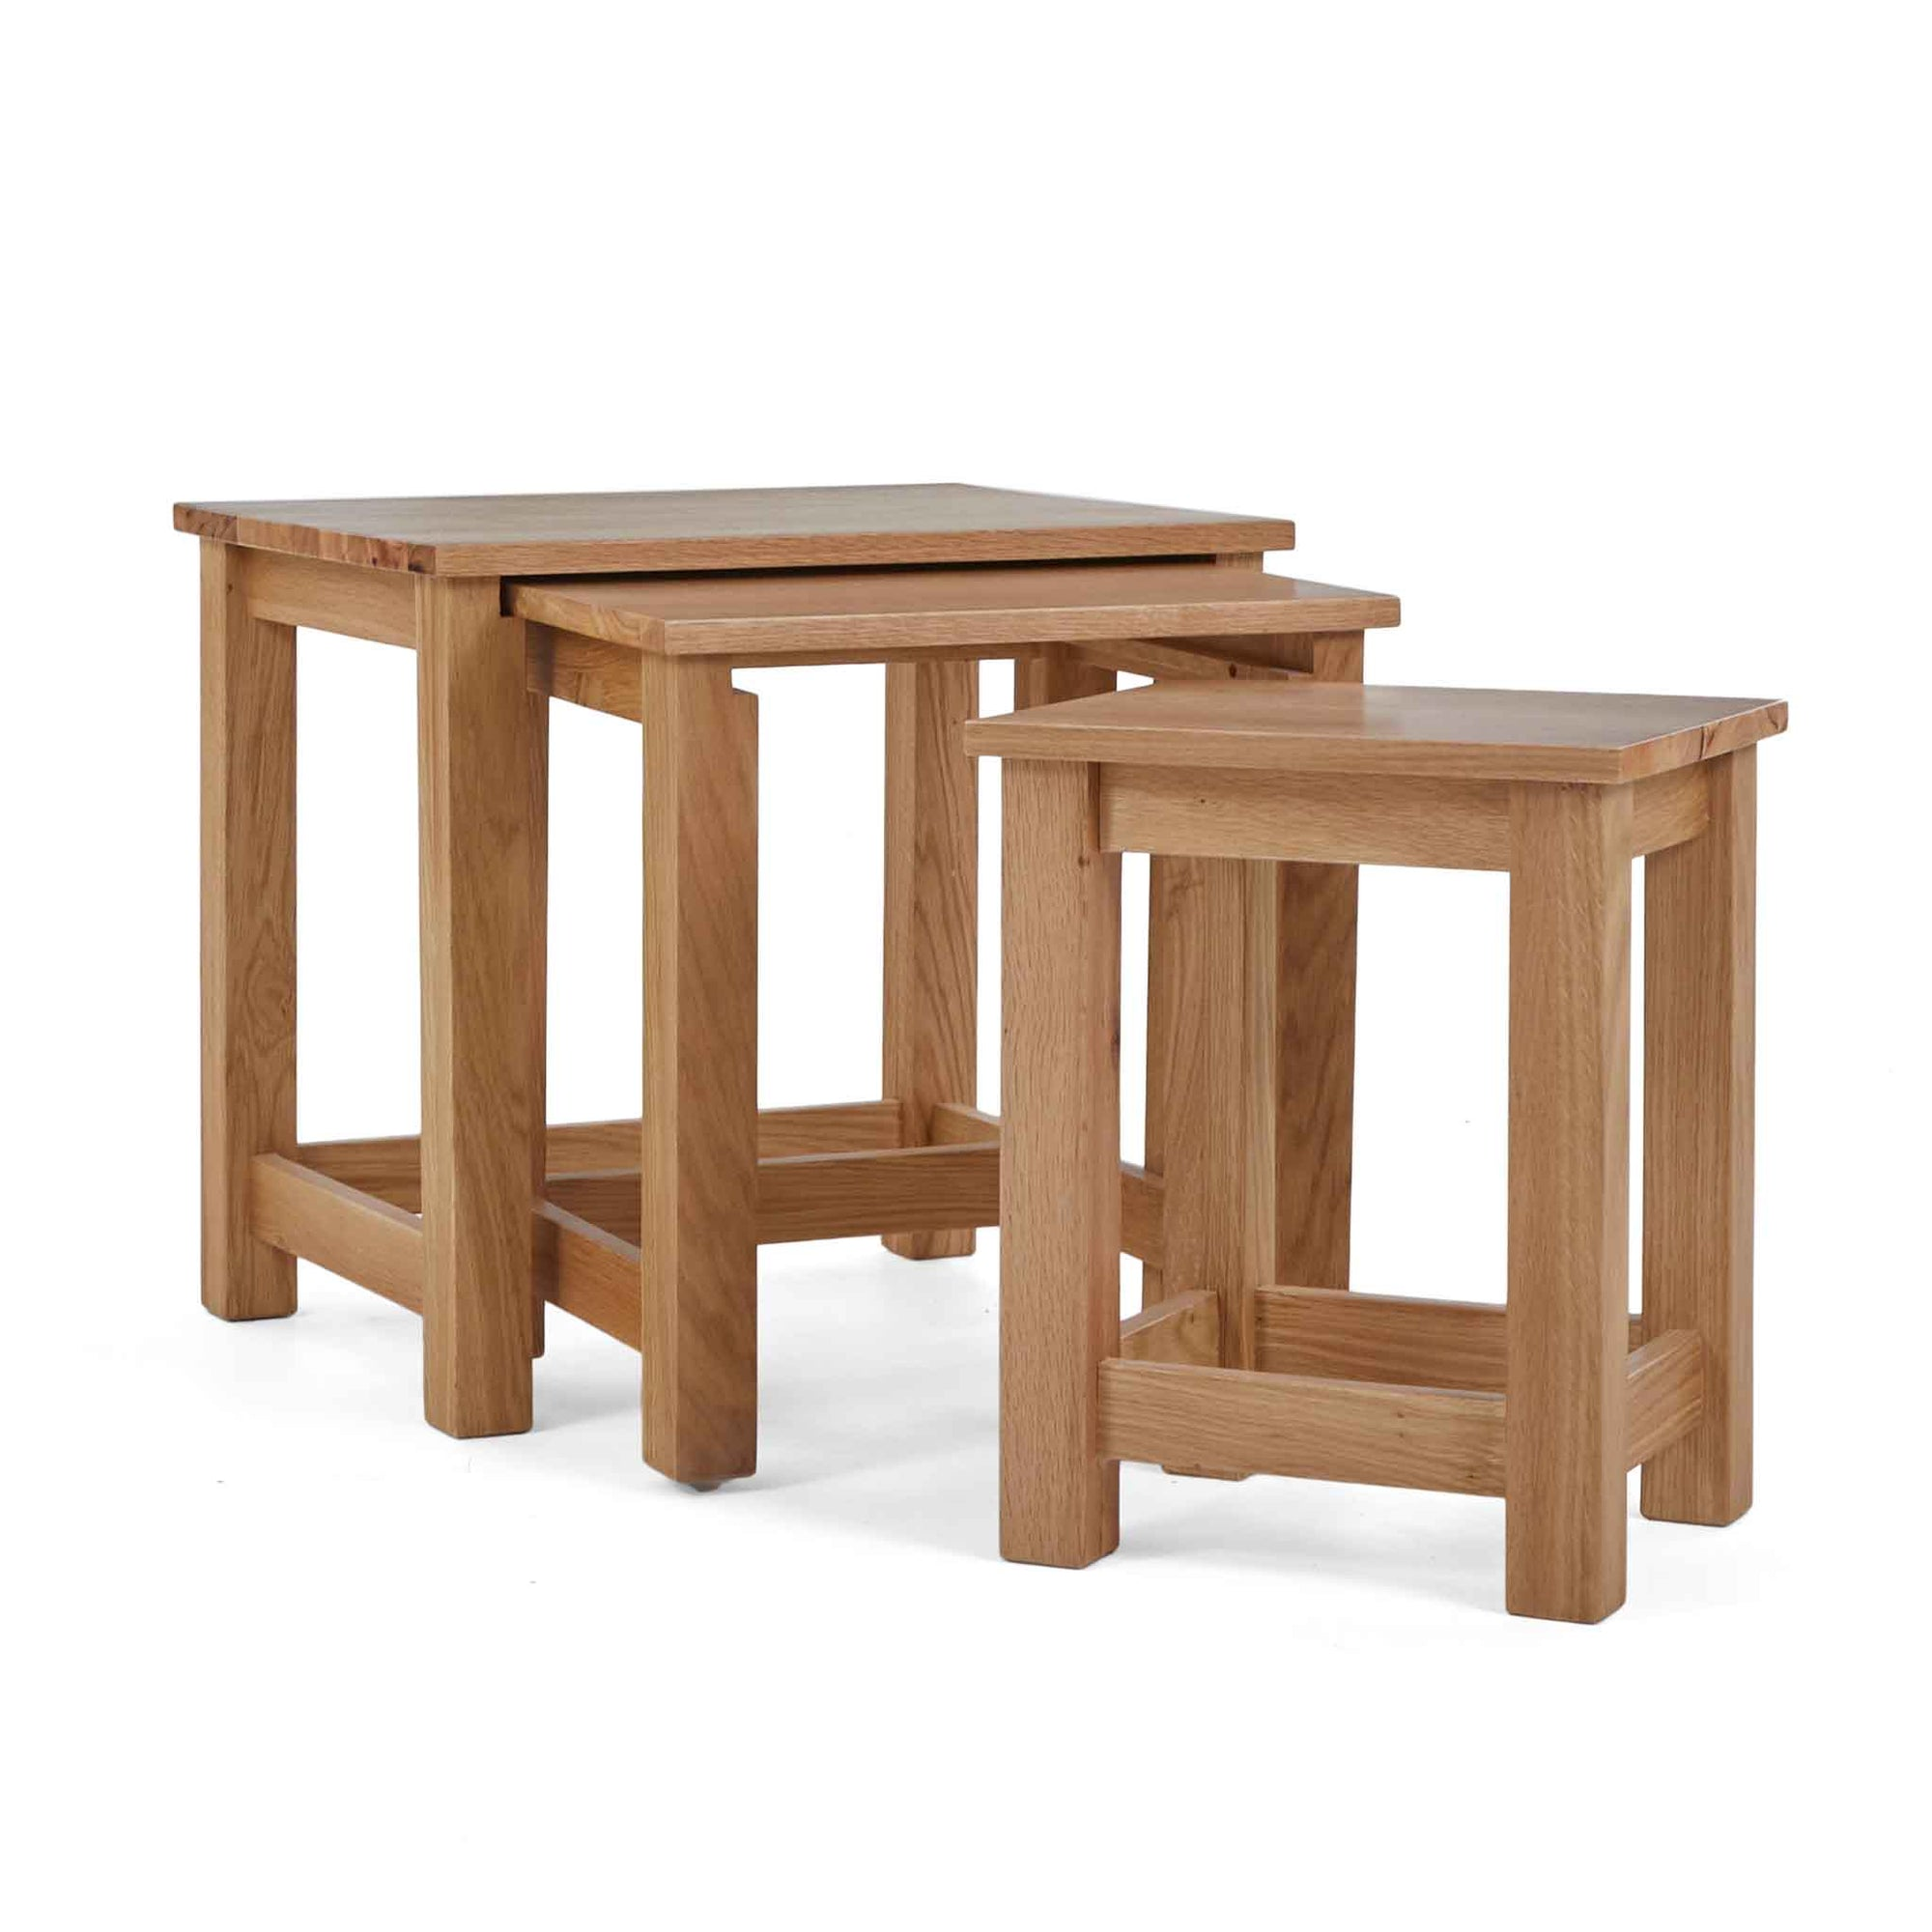 Falmouth Oak Nest of 3 Tables by Roseland Furniture